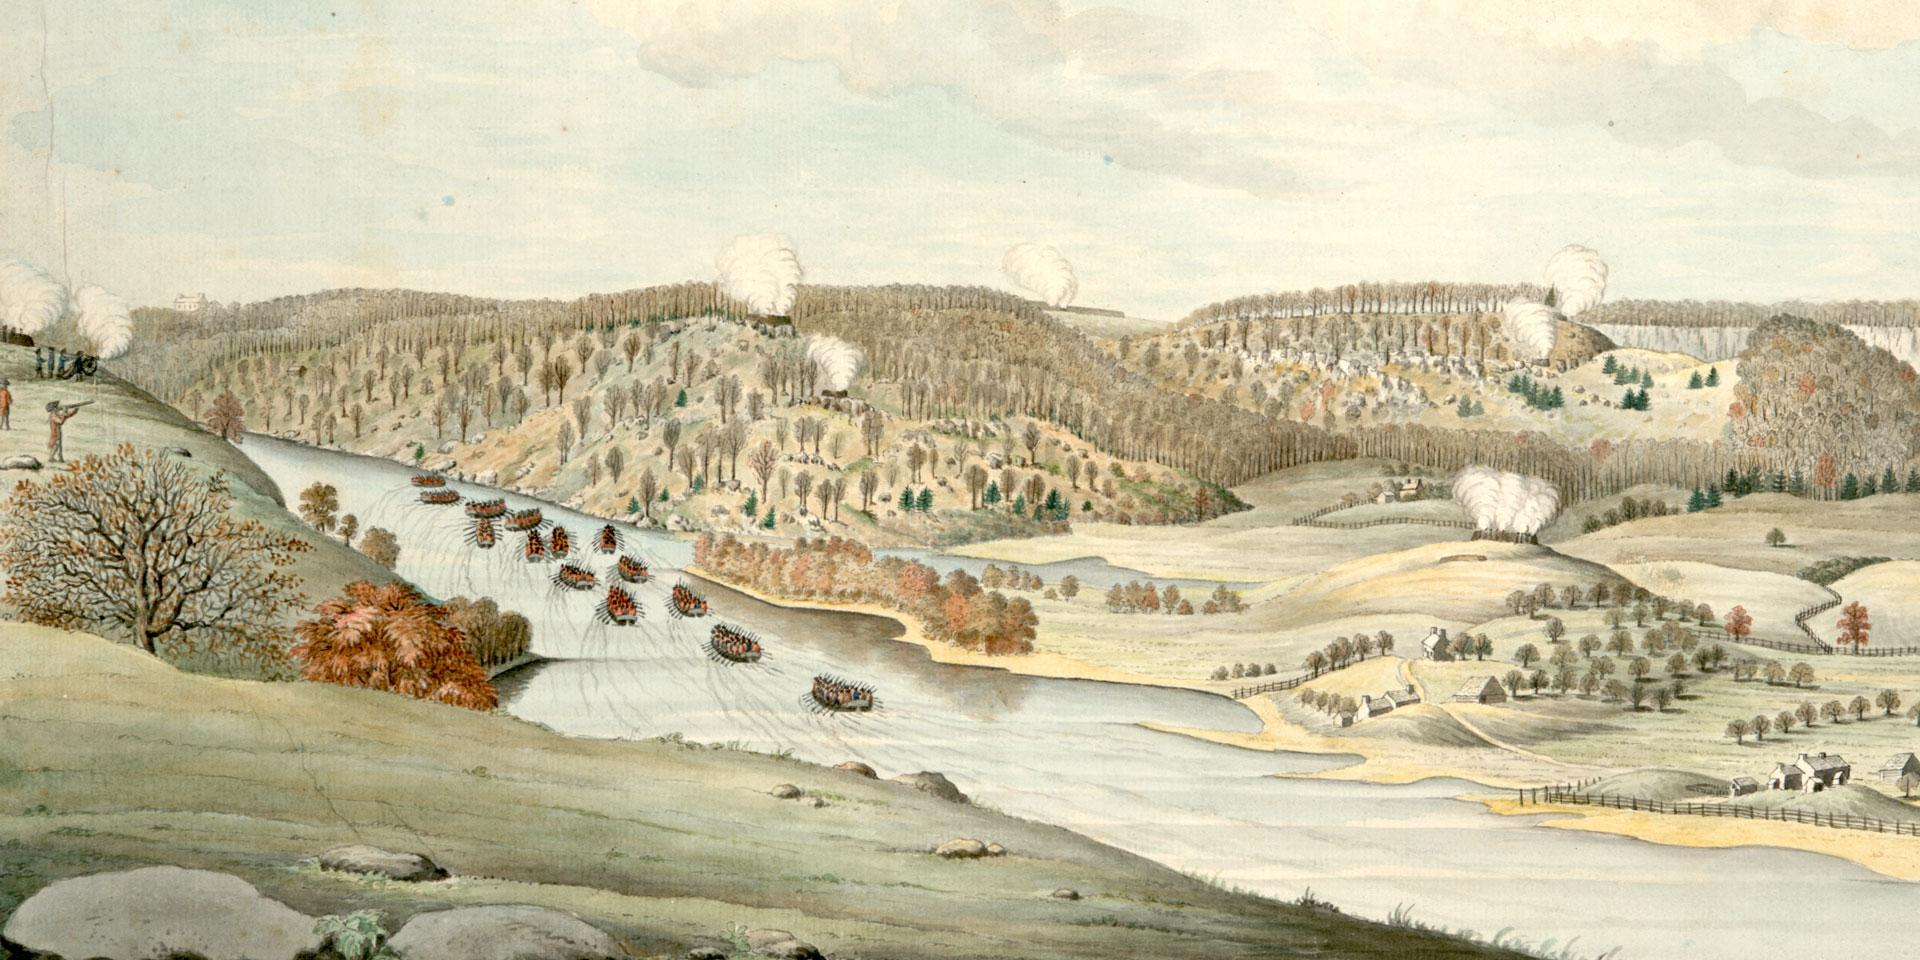 'A View of the Attack against Fort Washington and Rebel Redouts near New York' by Thomas Davies, 1776